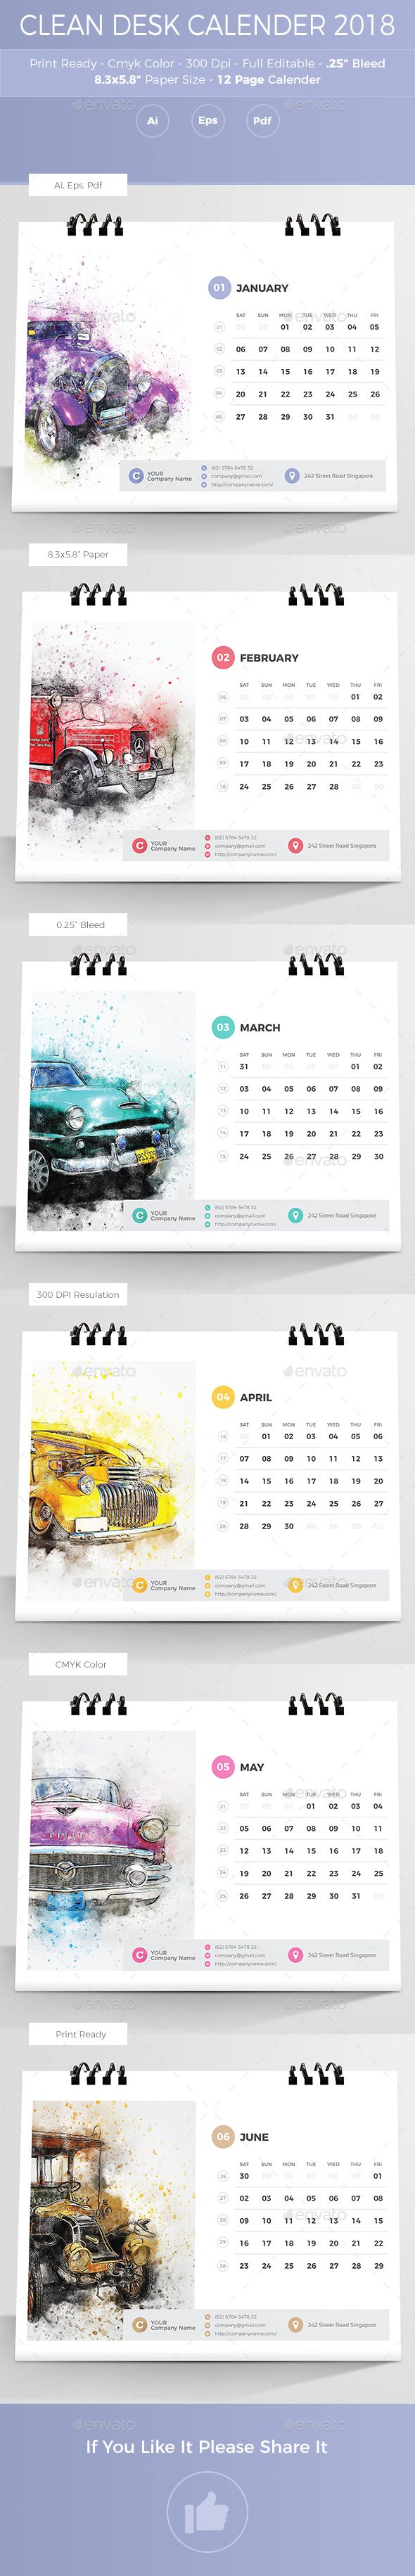 Clean Desk Calender 2018 Template Vector EPS, AI Illustrator